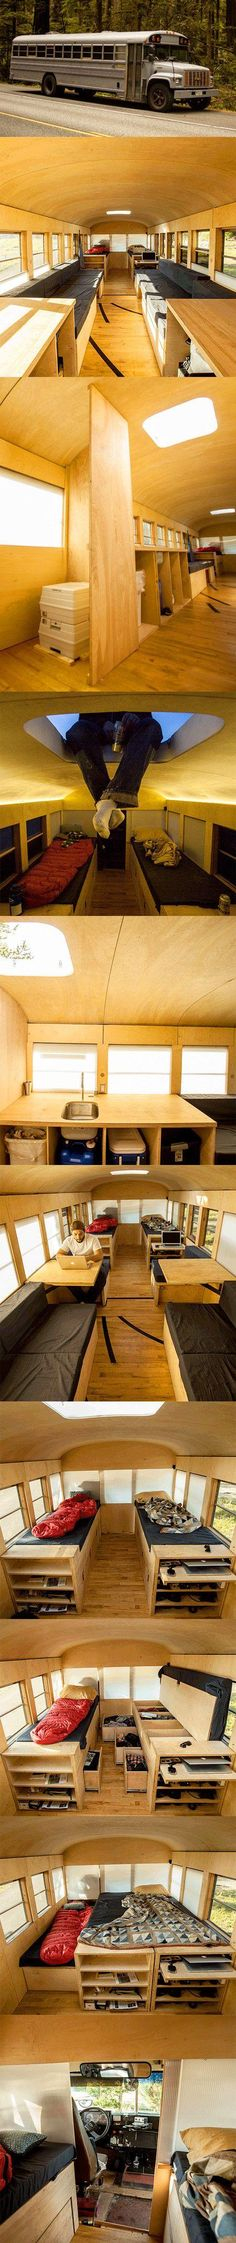 Architecture student Hank Butitta converted old school bus into a 225 square foot mobile home with small kitchen, living room.